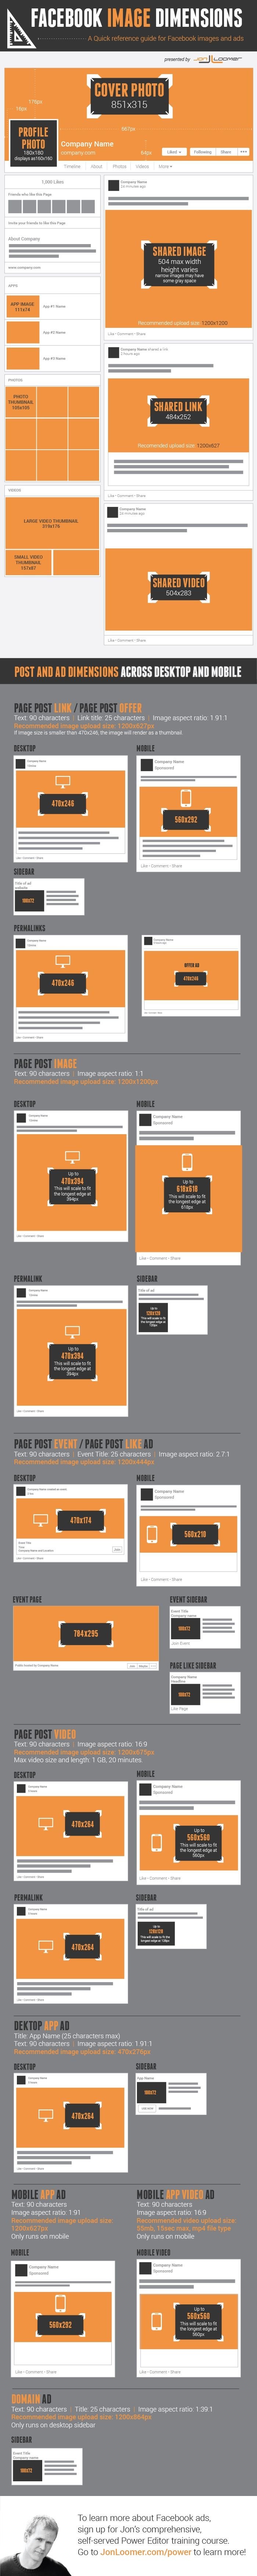 INFOGRAPHIC: Facebook's New Image Dimensions